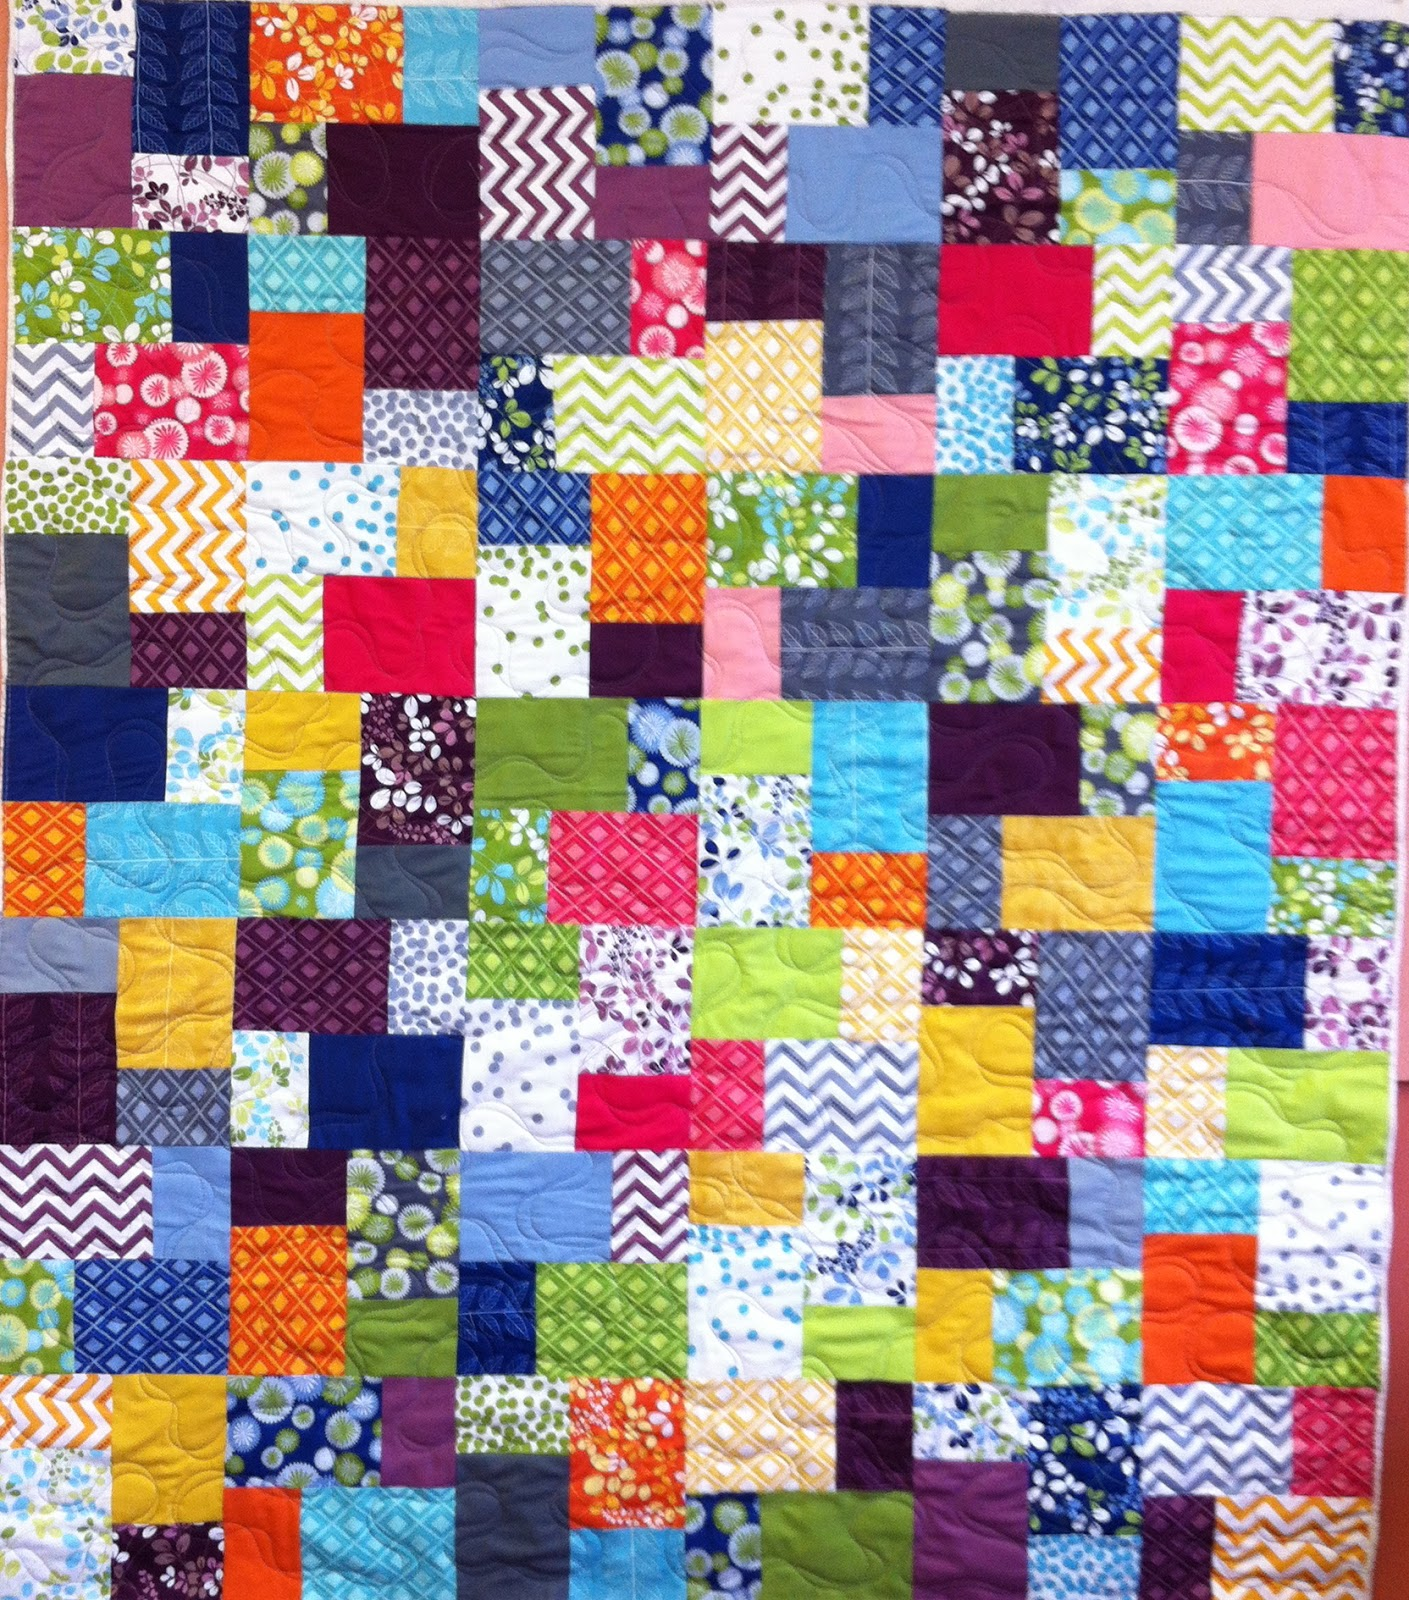 Linda S Quiltmania A Double Slice Of Cake